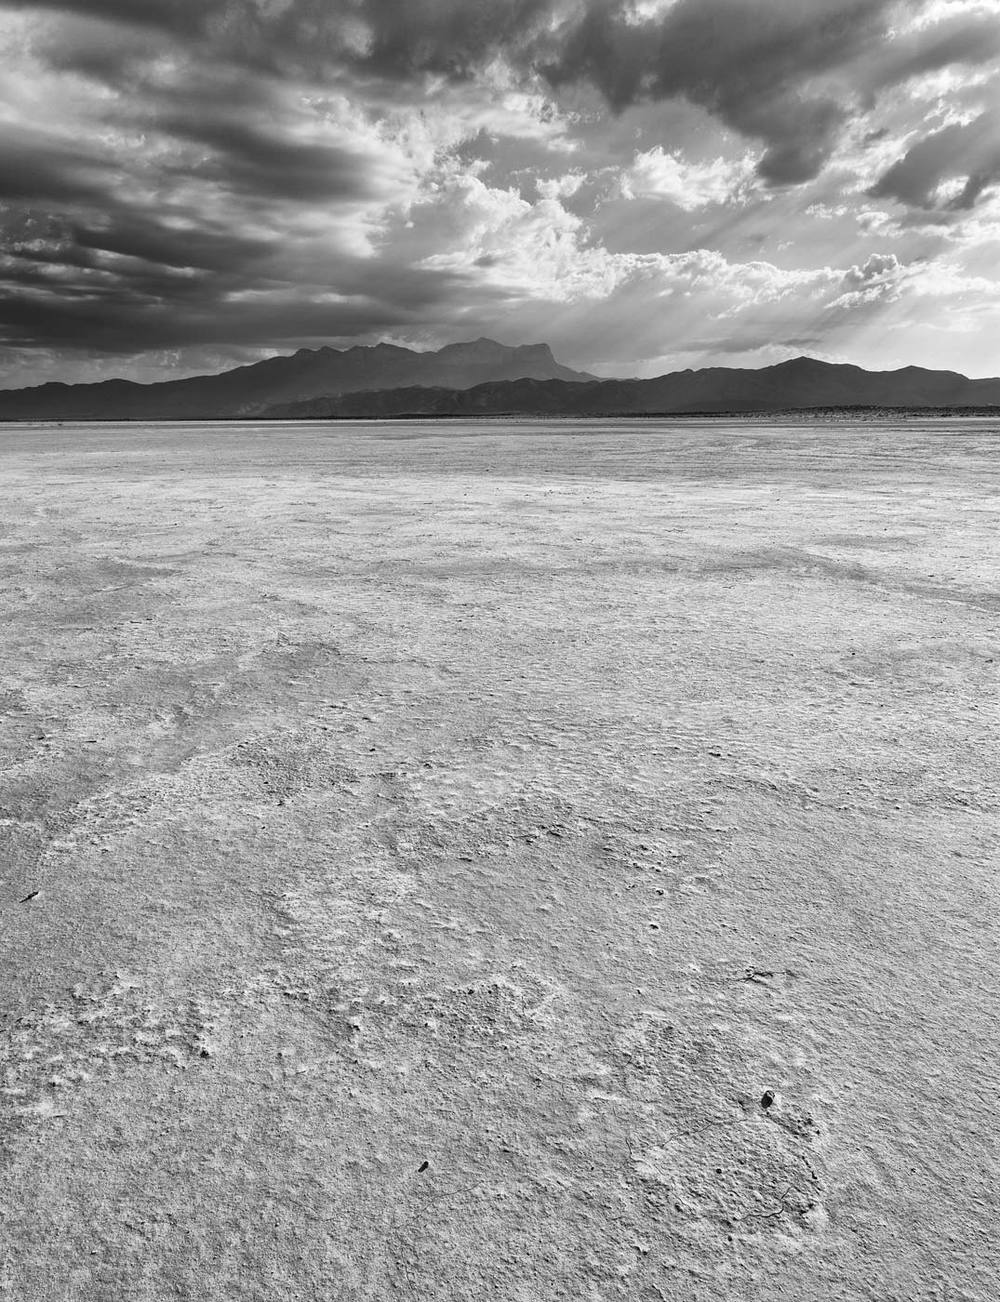 Guadalupe-Mountains-National-Park-ABP-Salt-Flat_black-and-white.jpg